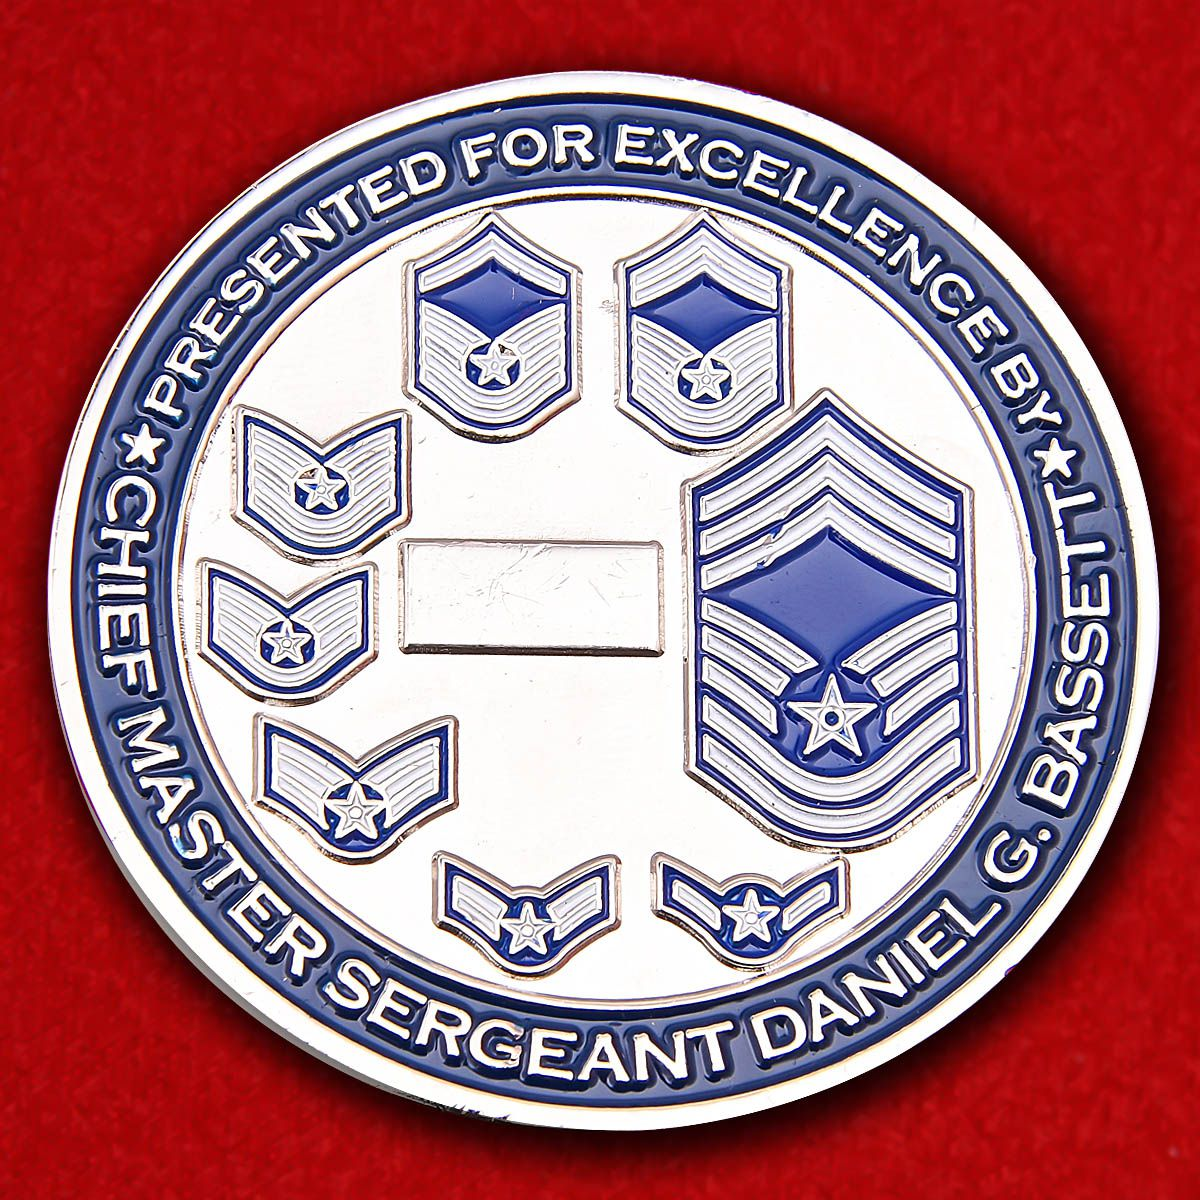 Chief Master Sergeant US Air Force Daniel G. Bassett Presented For Excellent Challenge Coin